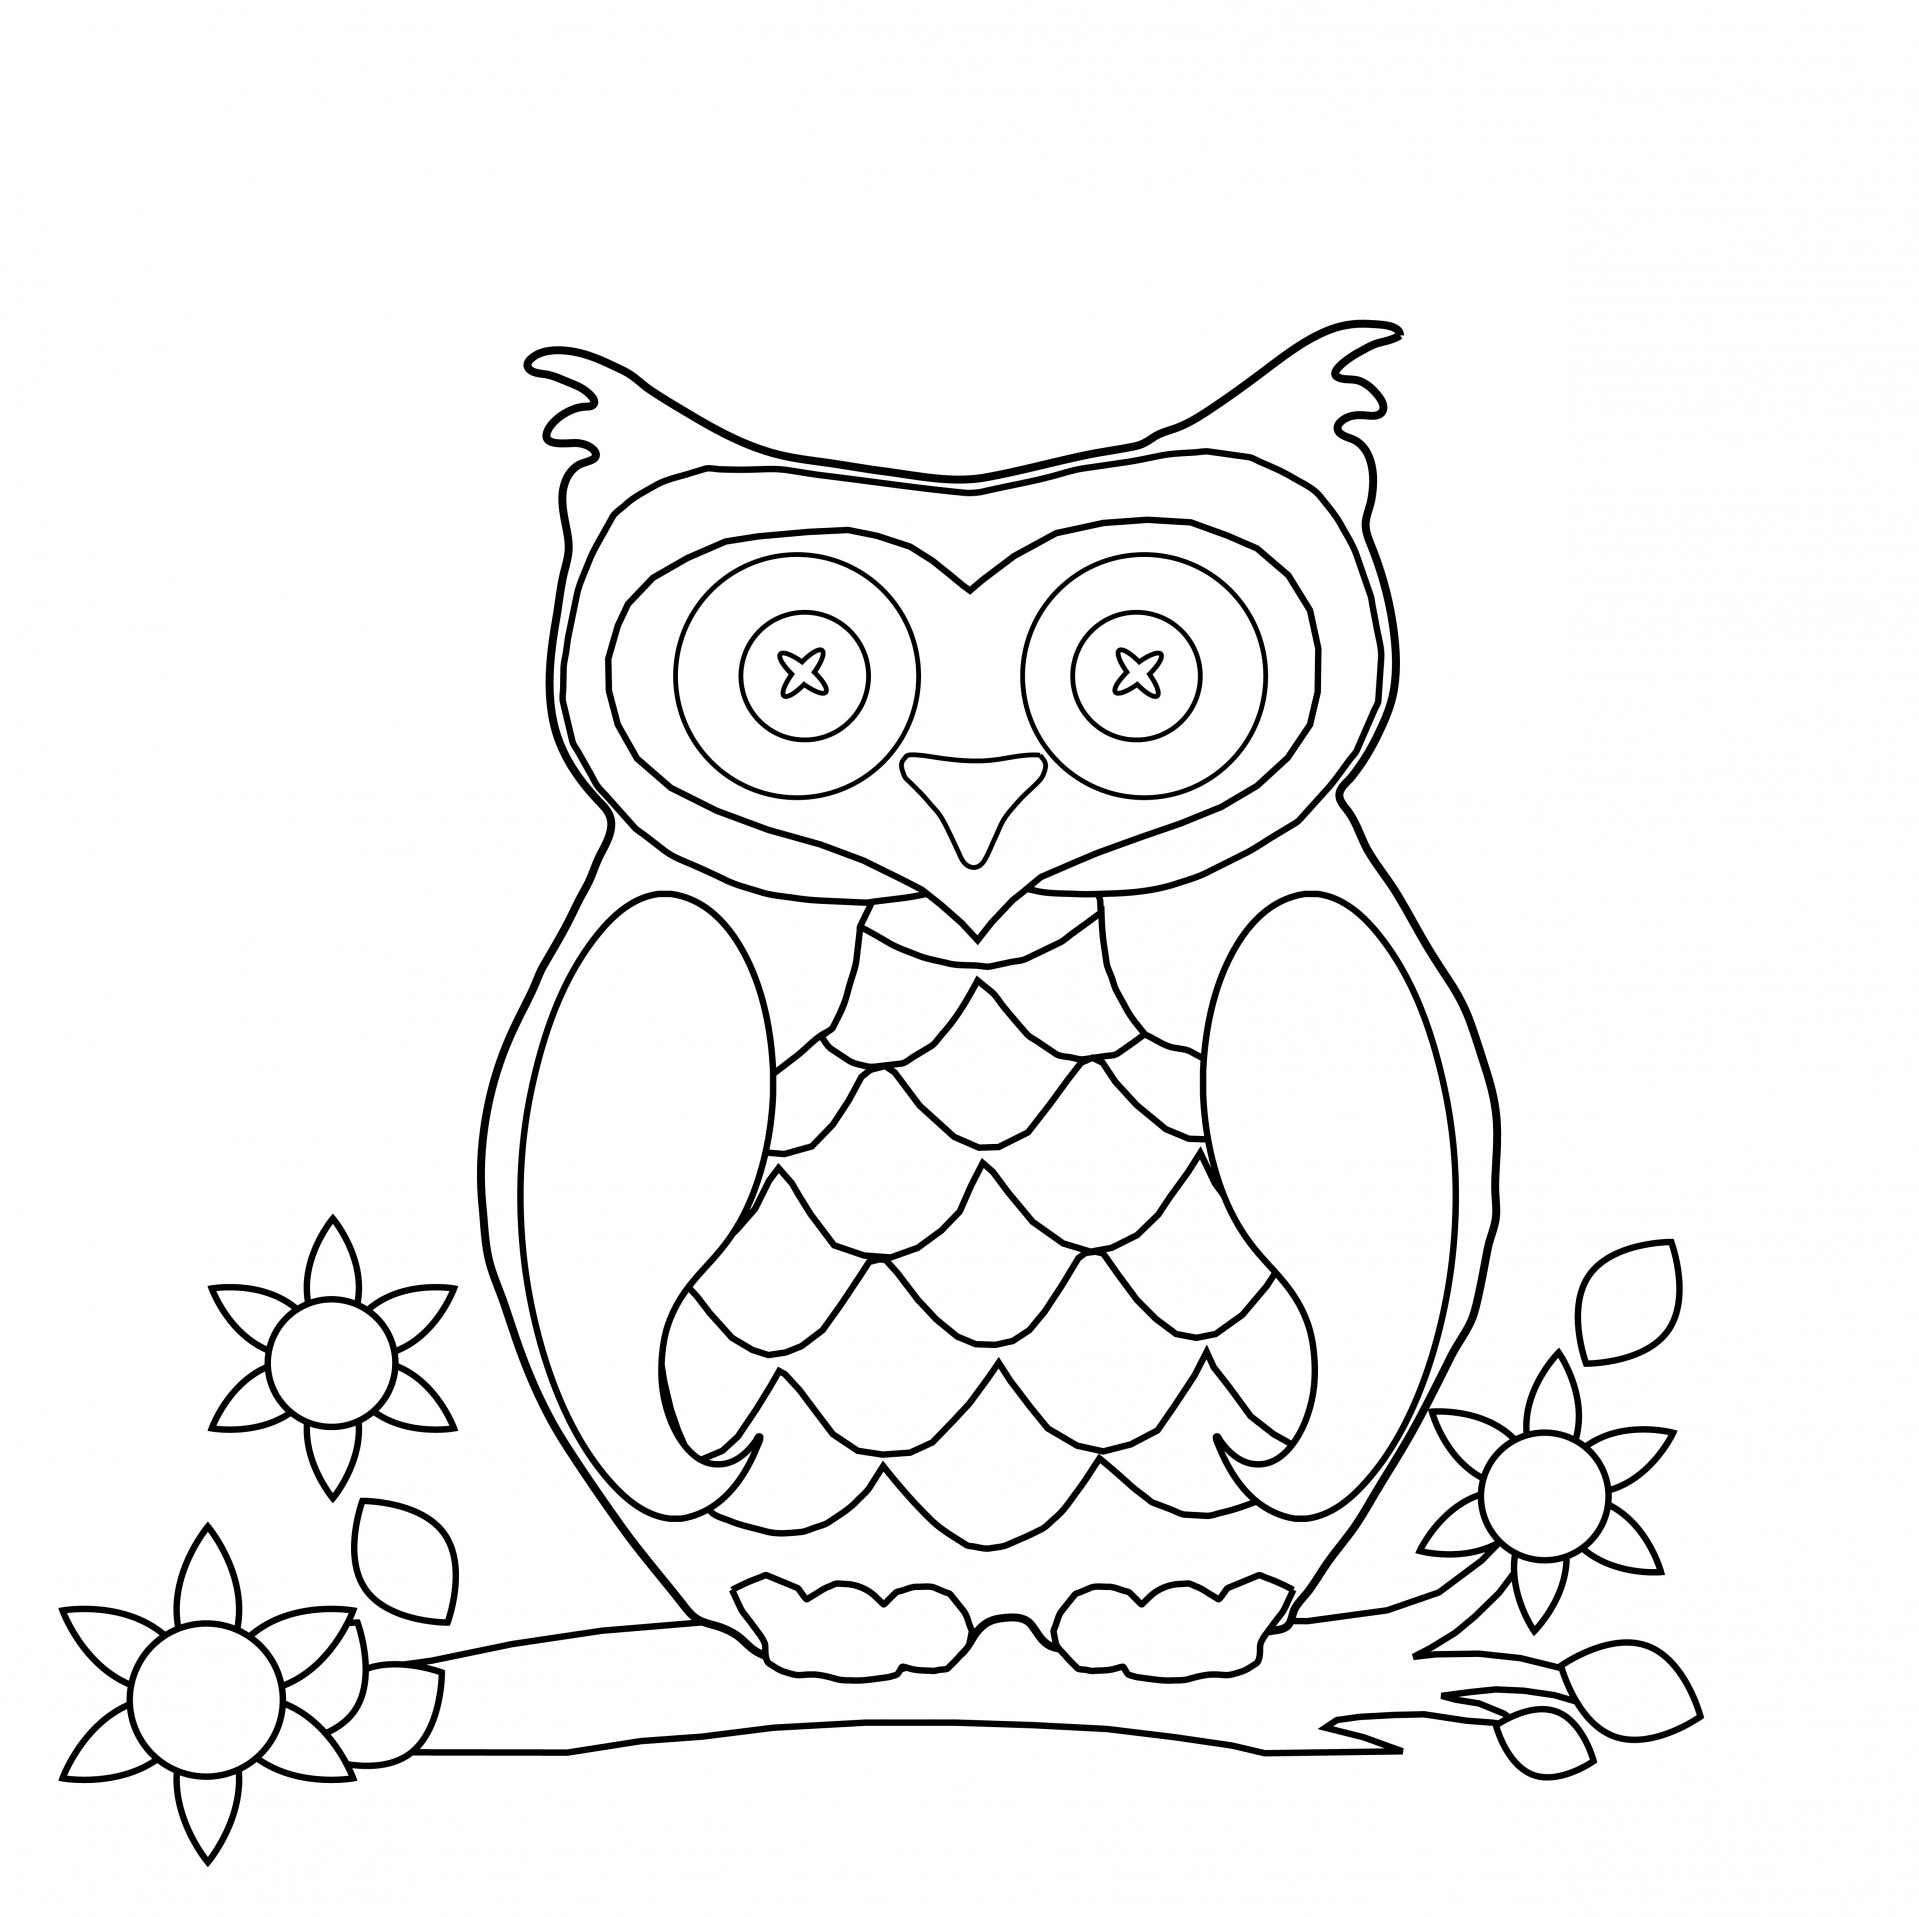 coloring pictures for adults 20 attractive coloring pages for adults we need fun adults pictures for coloring